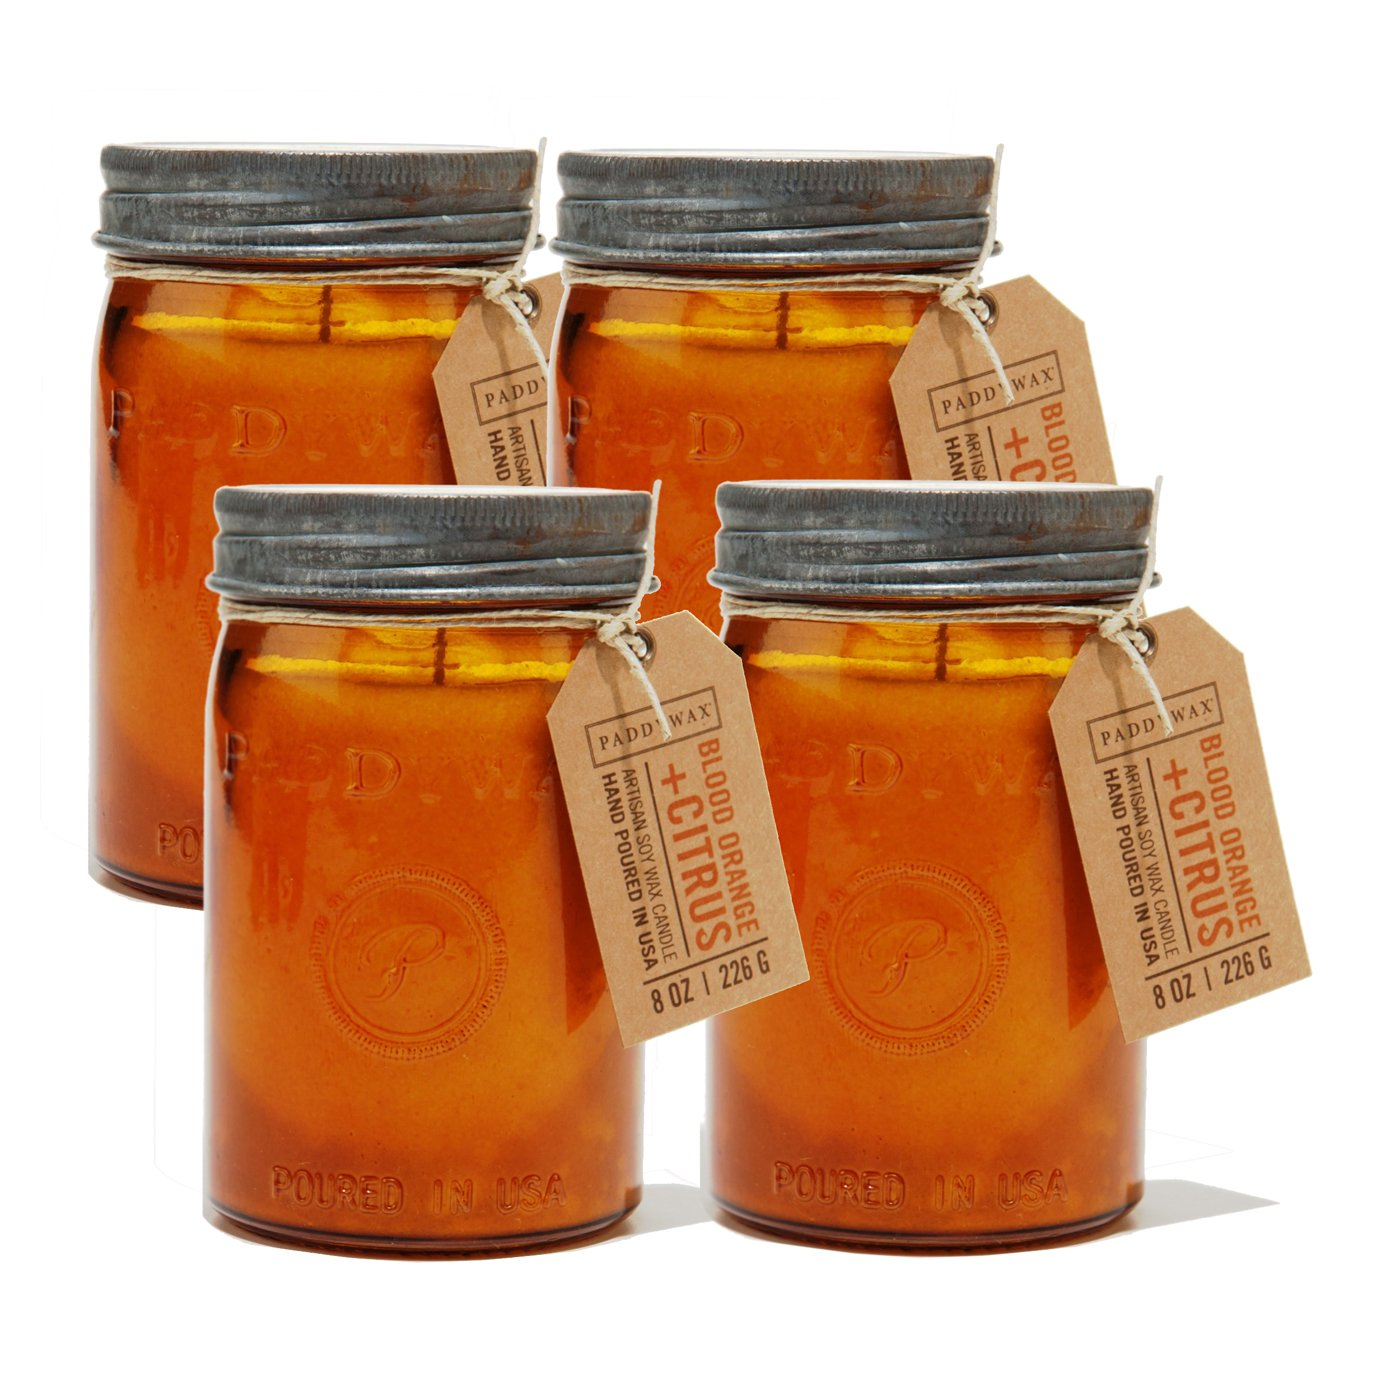 Paddywax Candles Relish Jar Collection Candle, 9.5-Ounce, Blood Orange and Citrus - Set of 4